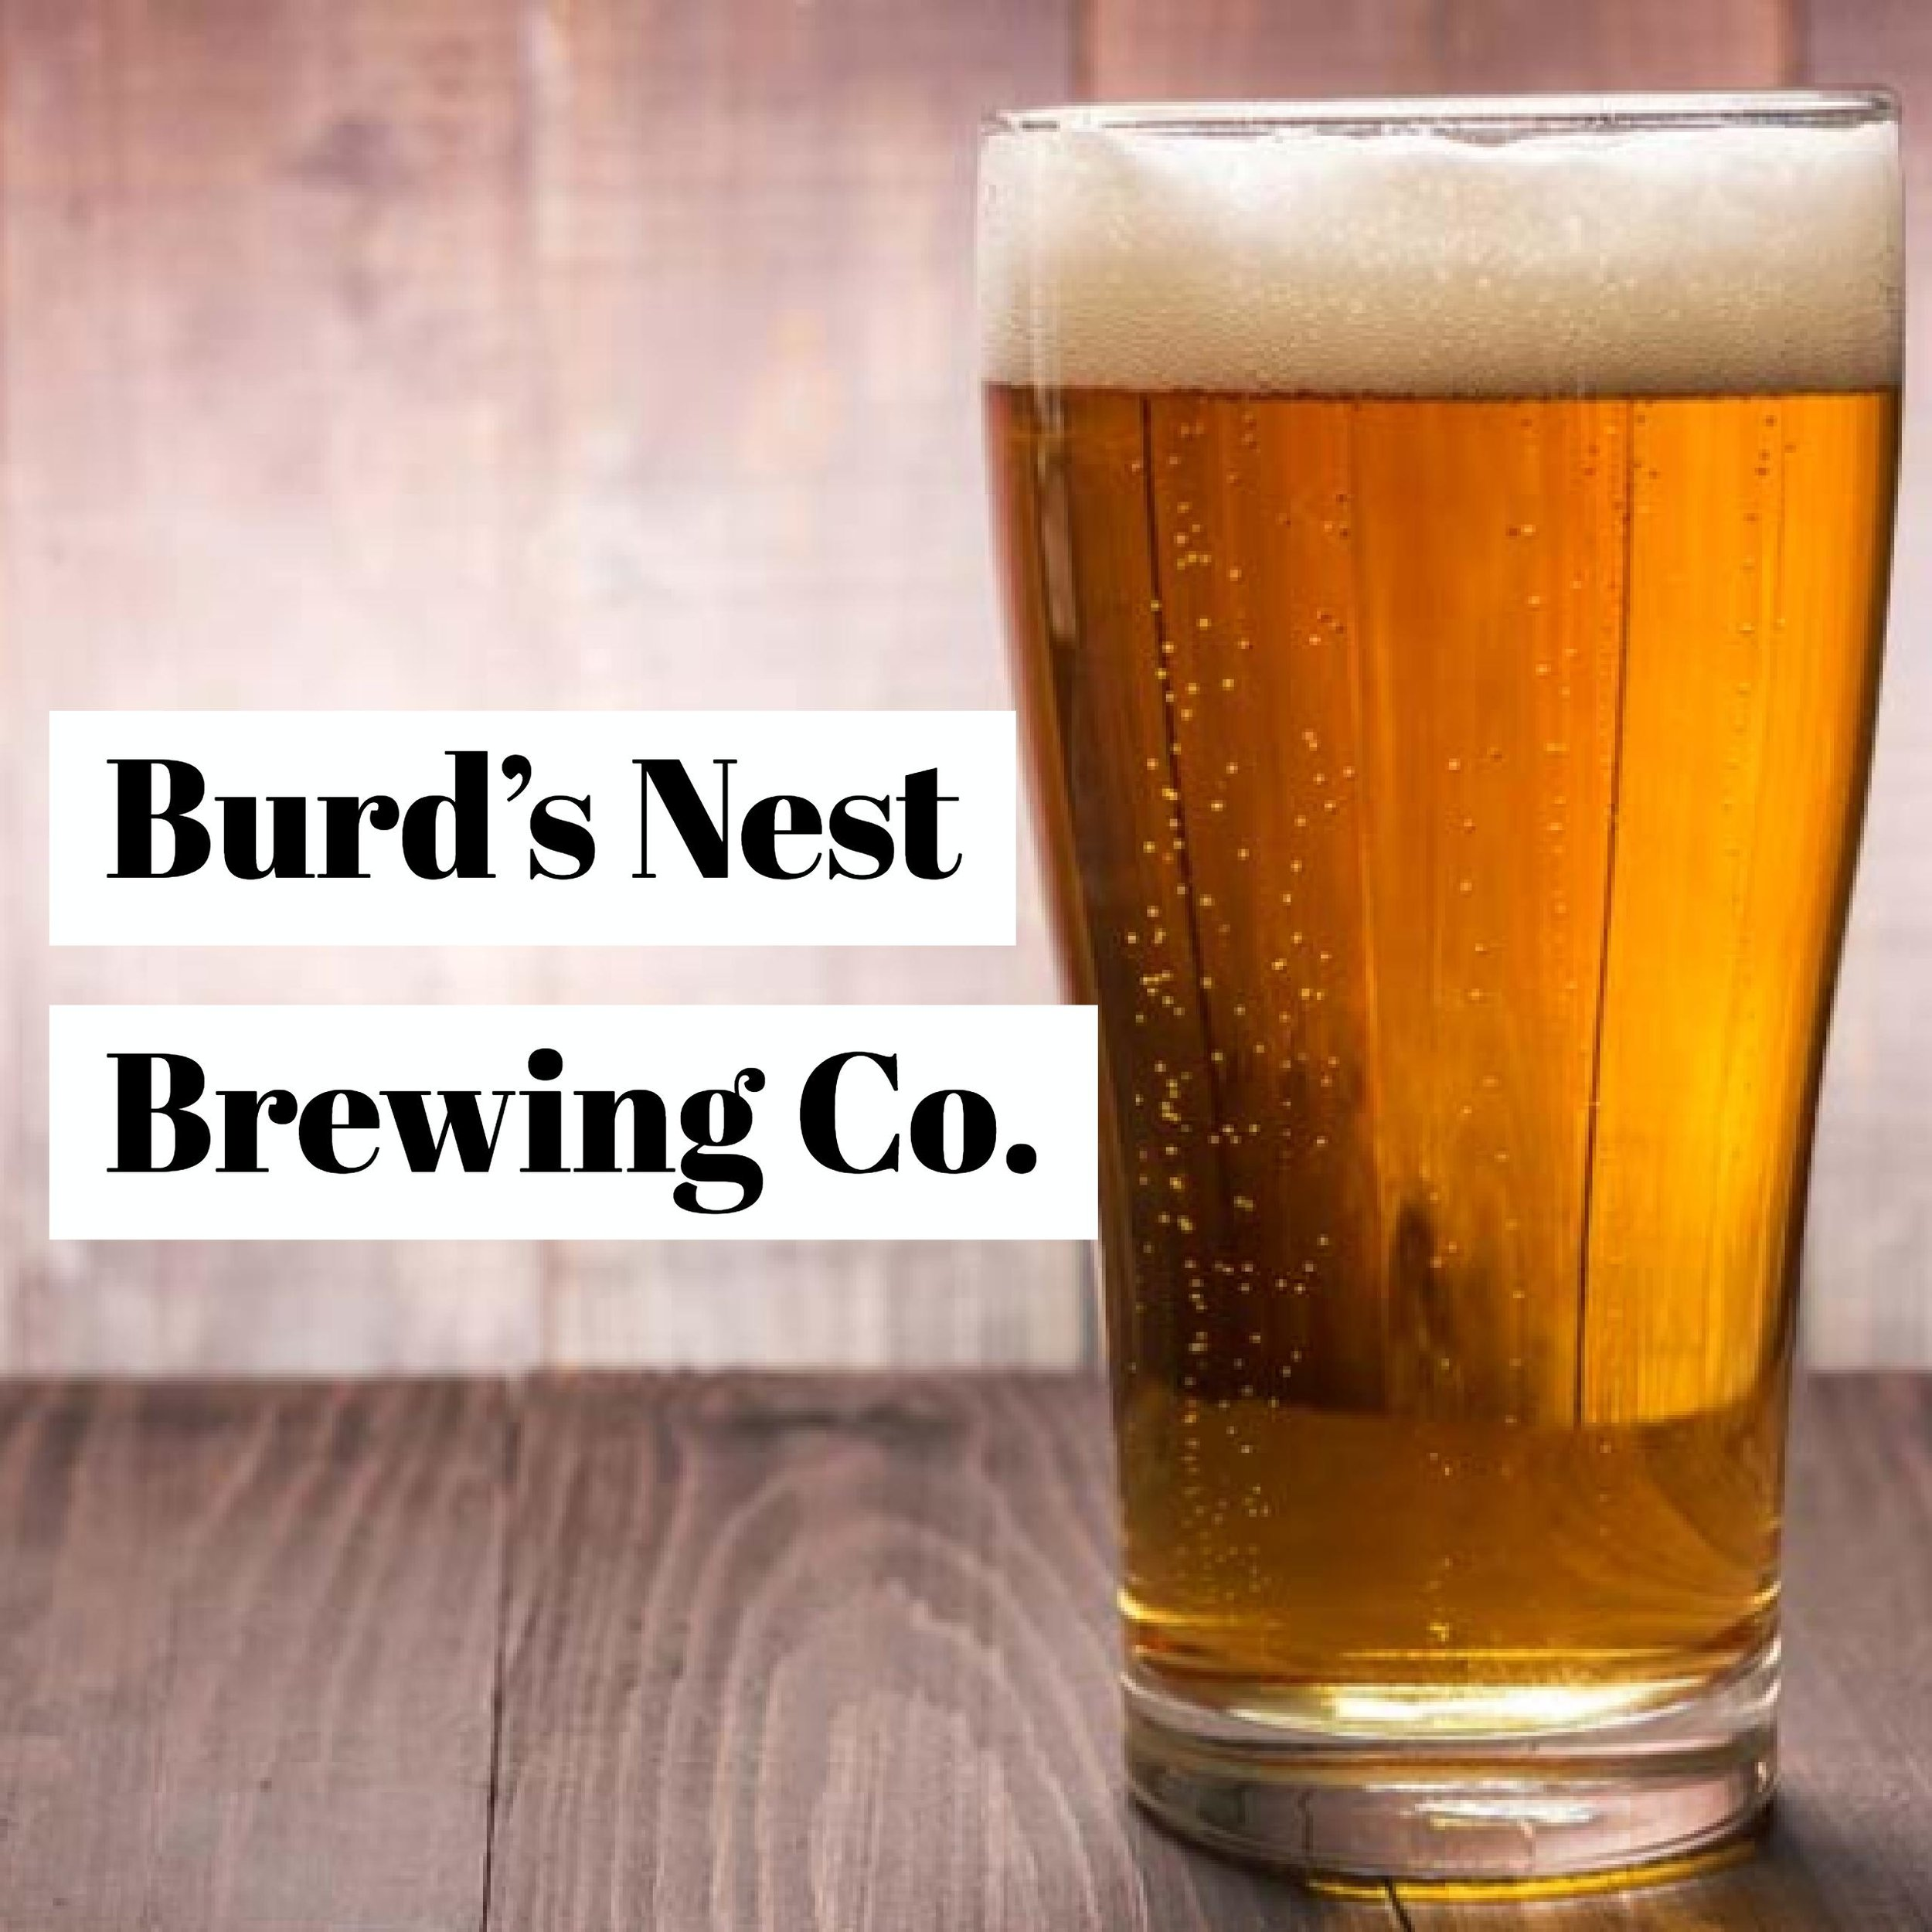 Burd's Nest Brewing Co.